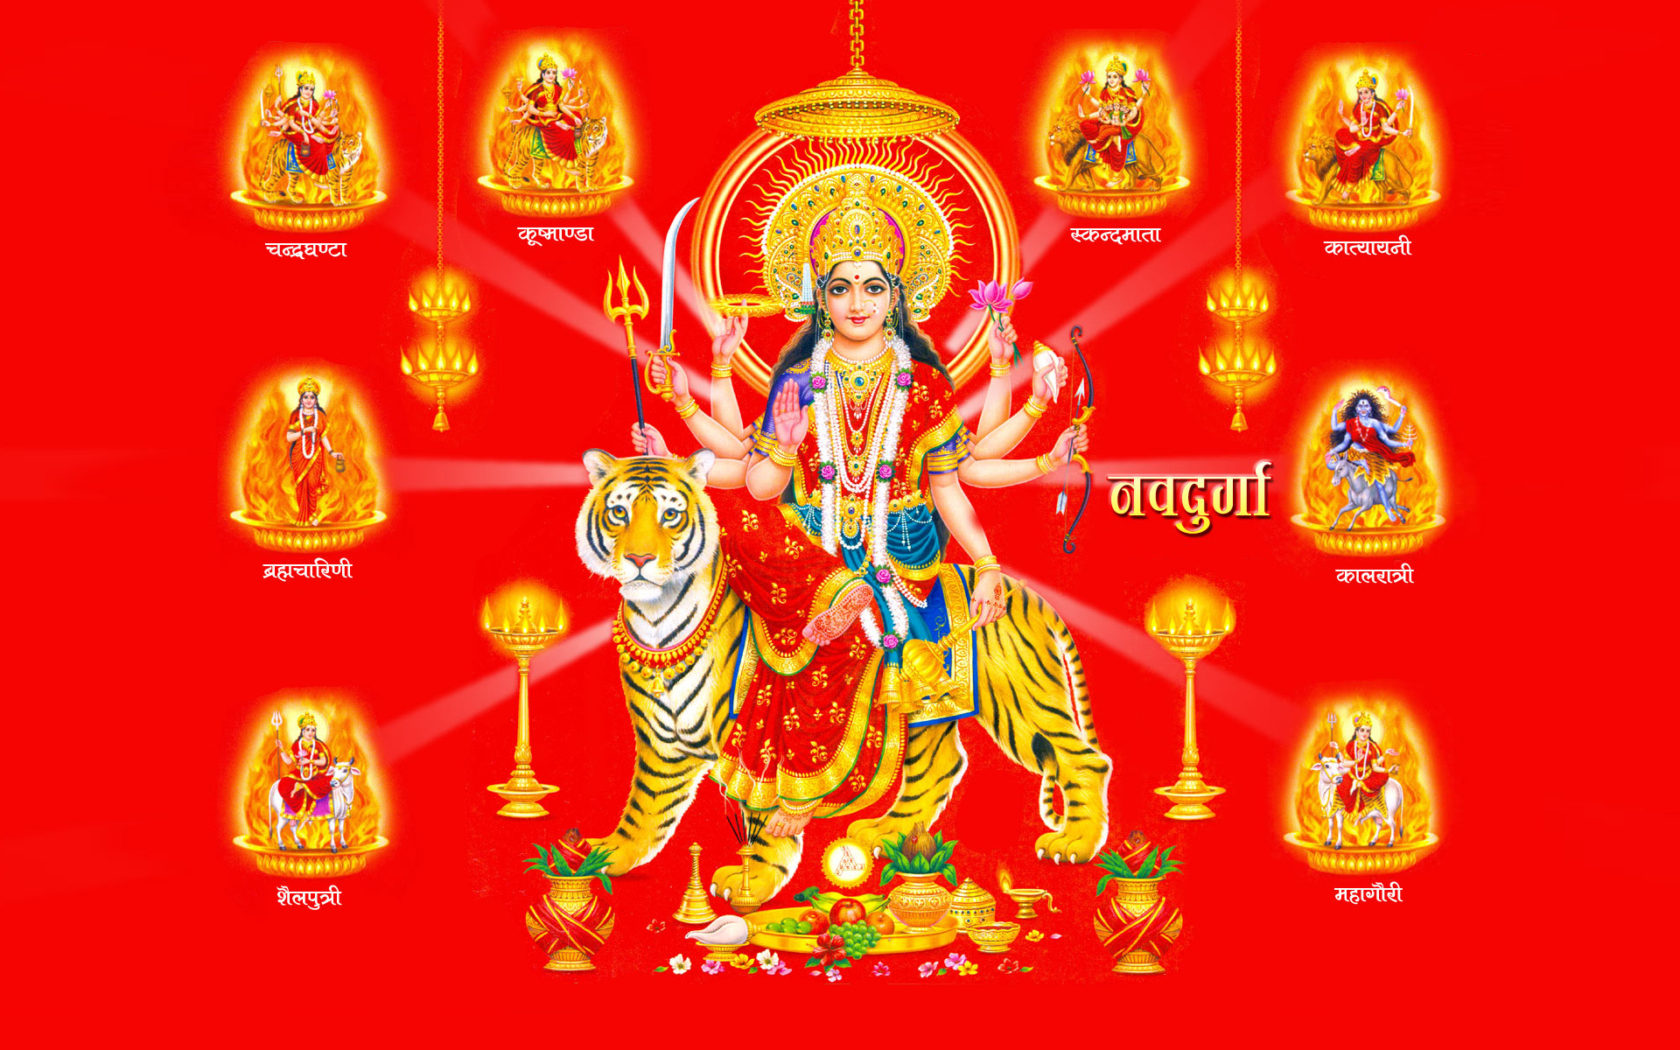 New Live Wallpapers For Iphone X Maa Nav Durga Photo And Hd Wallpaper For Desktop 1920x1200